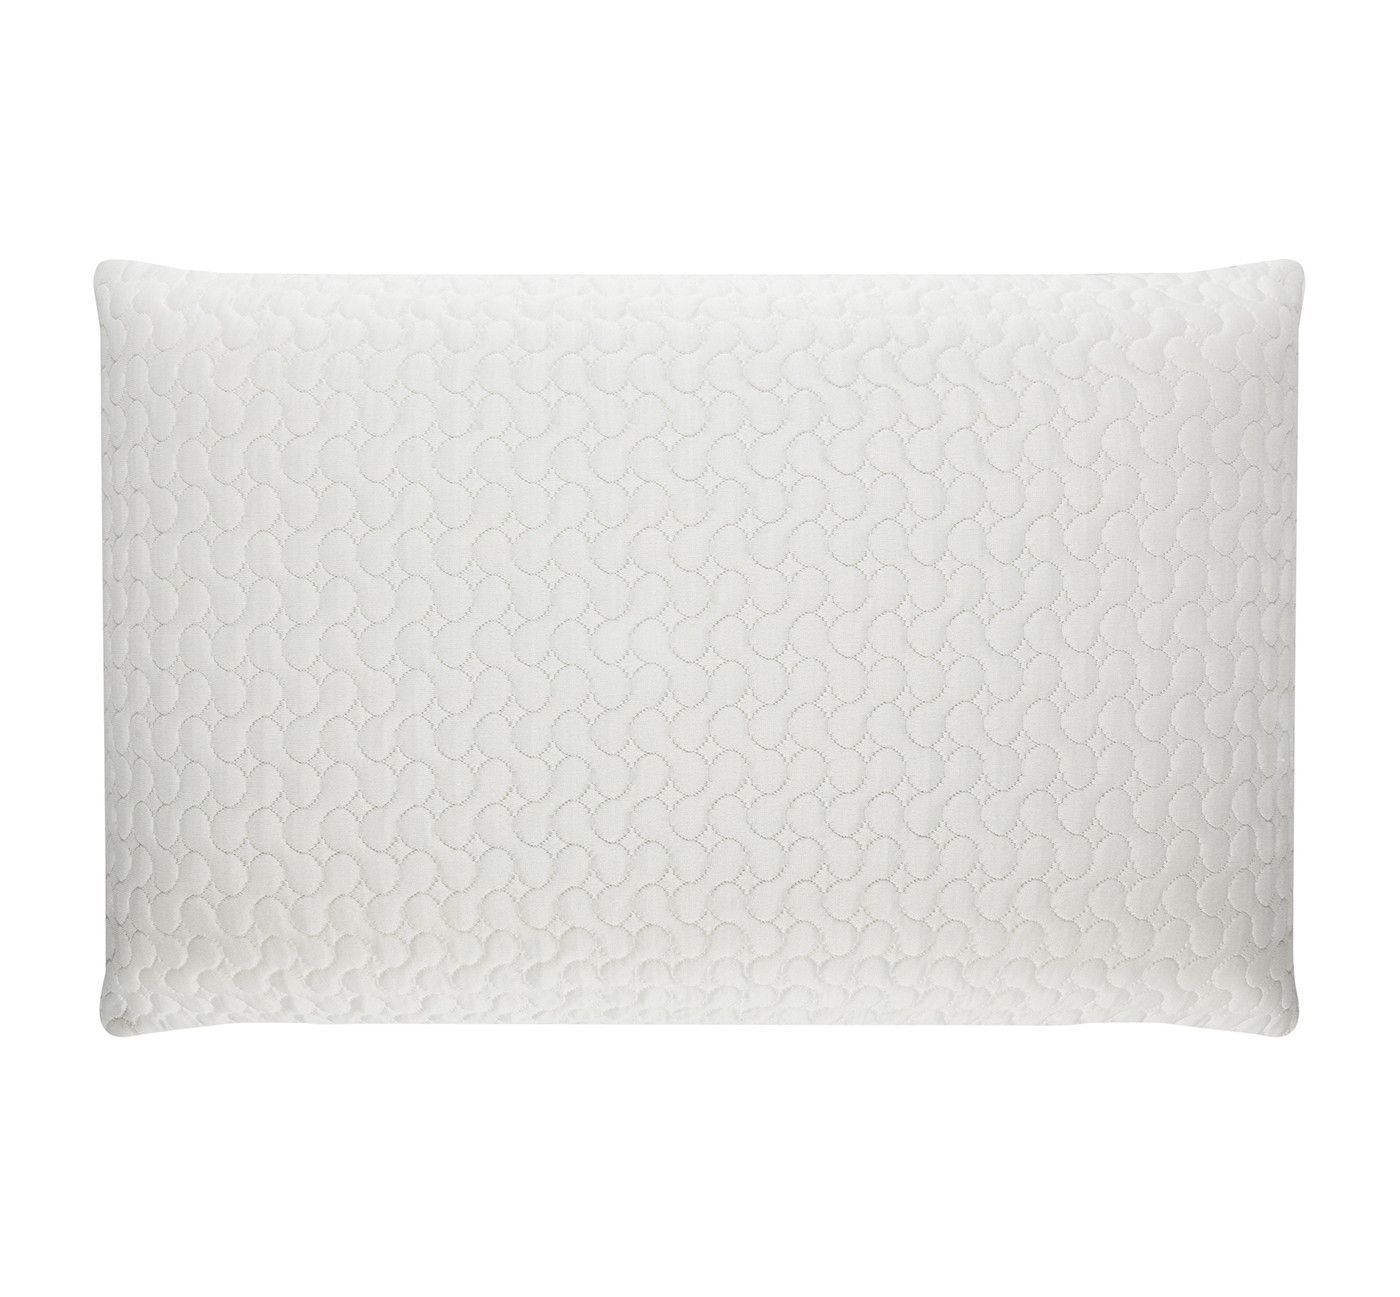 Home Adaptive Support Pillow (Queen